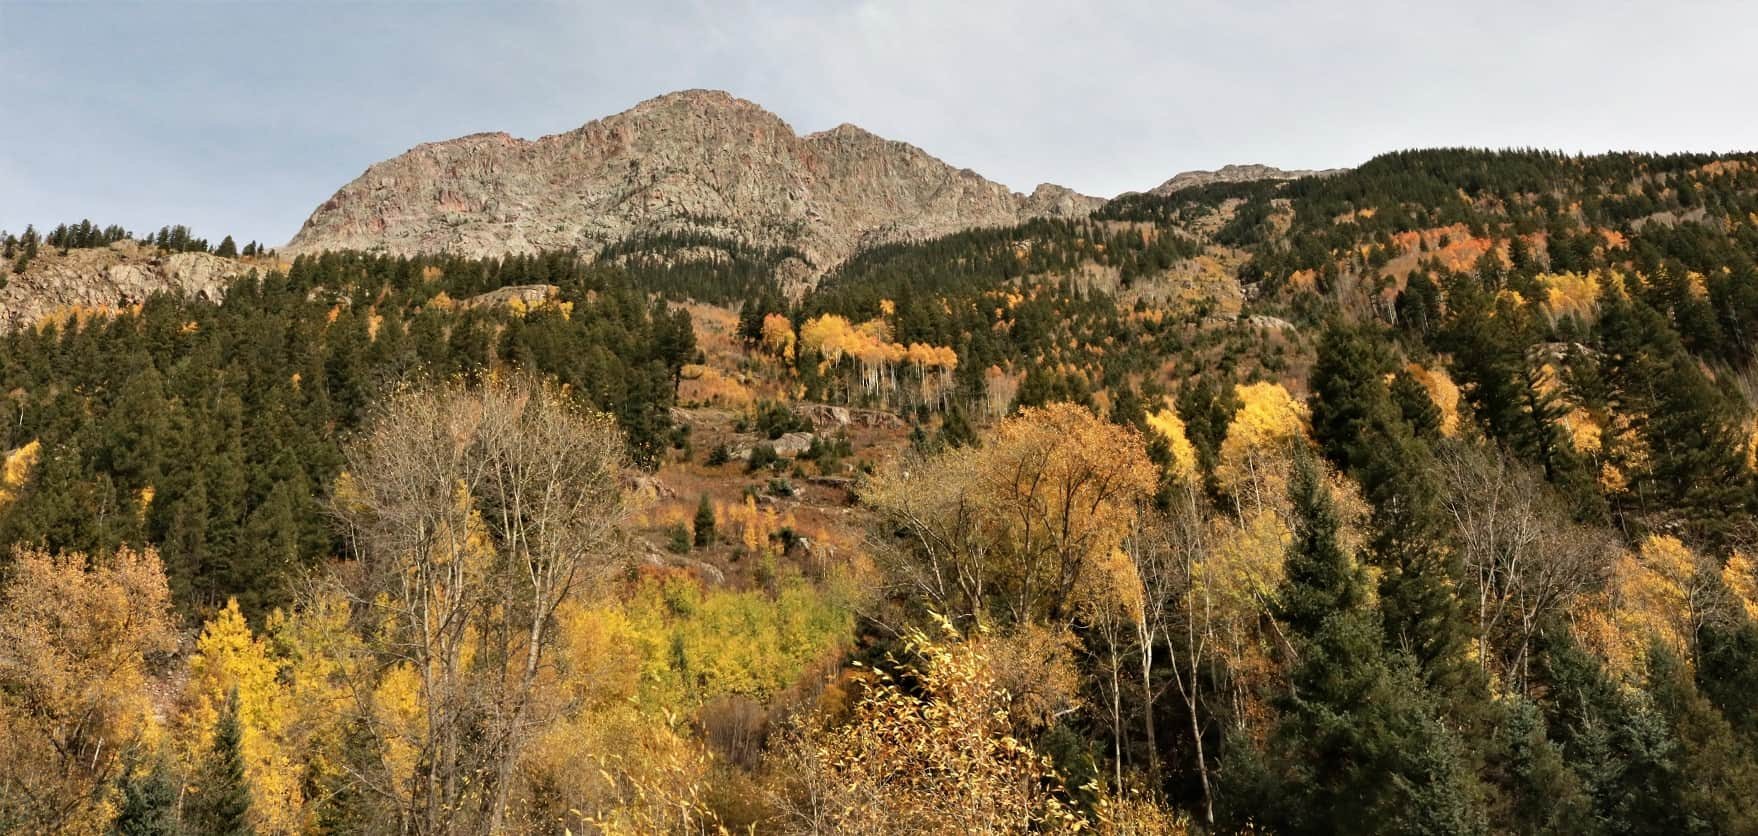 Landscape view of San Jaun Mountain outcroppings with fall foliage.